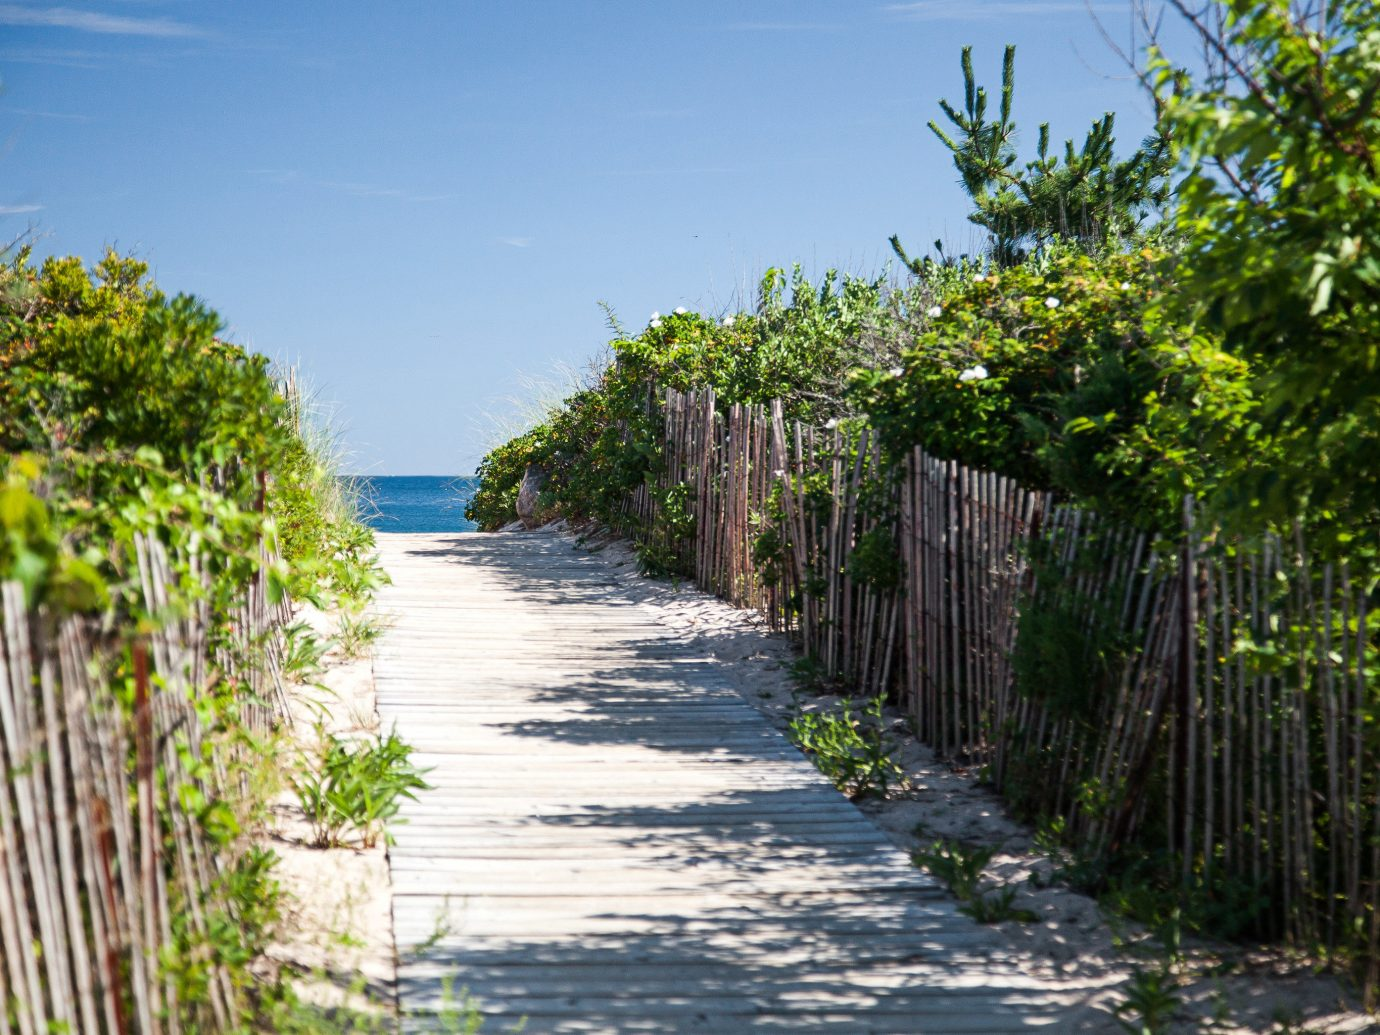 Beach Beachfront Nature Outdoors tree outdoor habitat walkway body of water River arecales waterway path plant bushes flower Garden surrounded lined